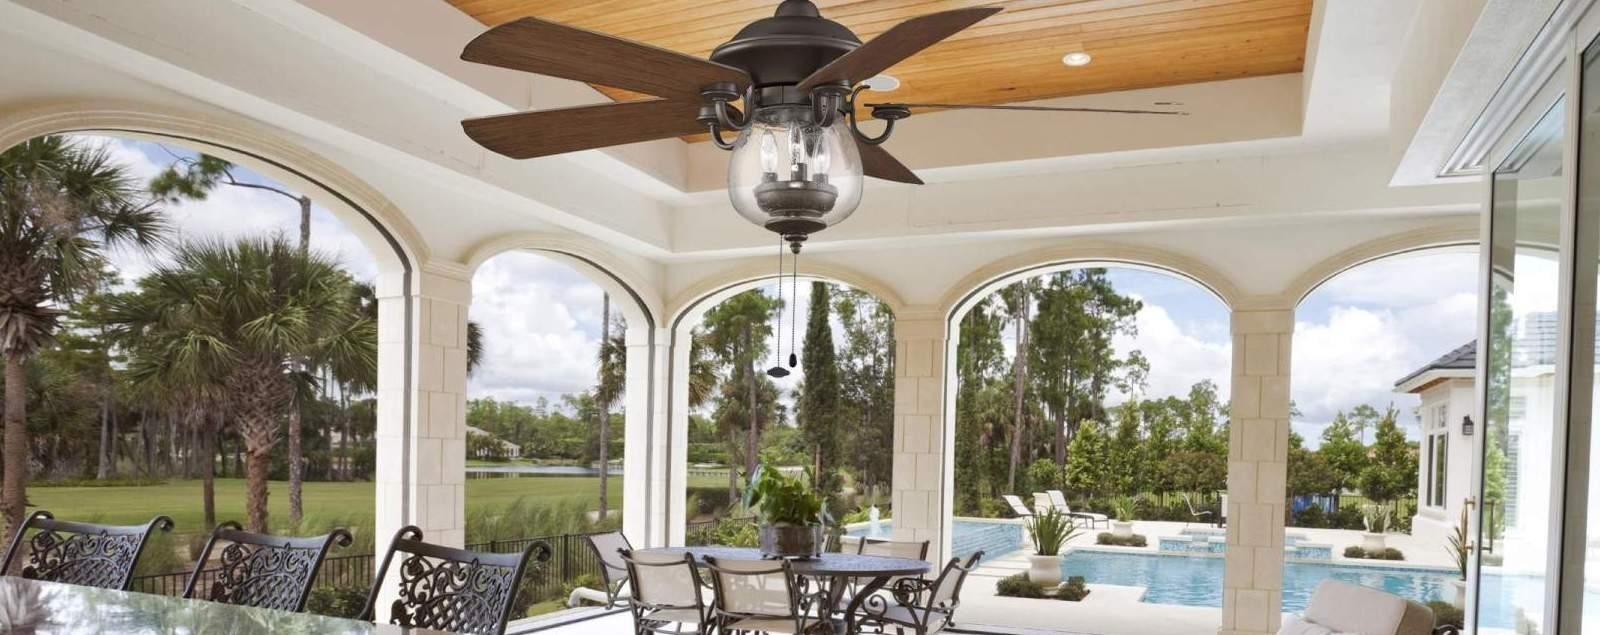 Outdoor Ceiling Fans – Choose Wet Rated Or Damp Rated For Your Space! Pertaining To Current Wet Rated Outdoor Ceiling Lights (View 11 of 20)